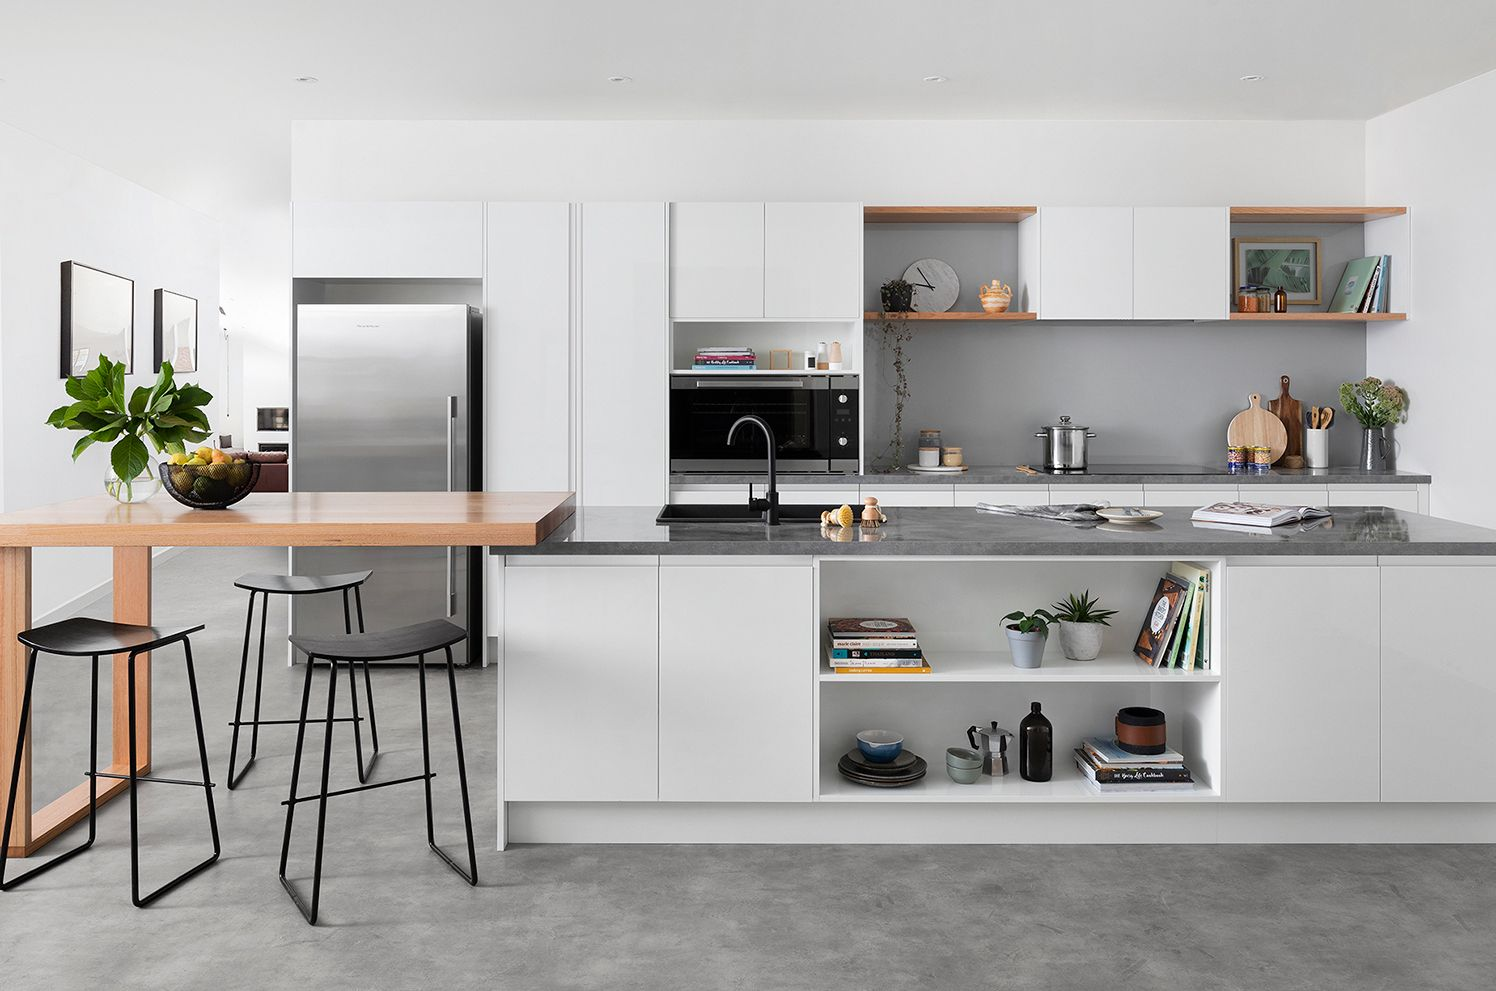 kaboodle in 2020 kitchen inspirations chic kitchen kitchen design on kaboodle kitchen design id=60887